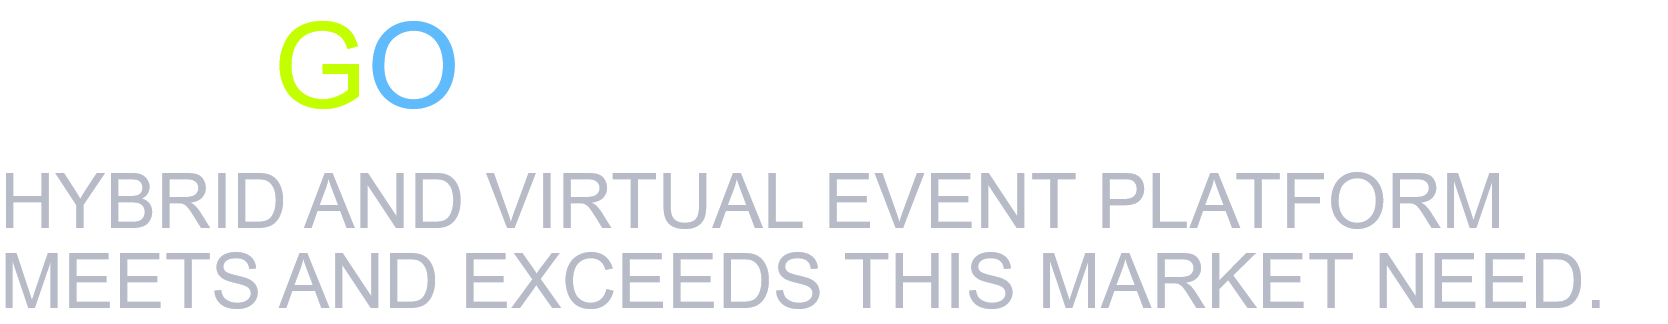 The GoDigitalExpohybrid and virtual event platform meets and exceeds this market need.@2x